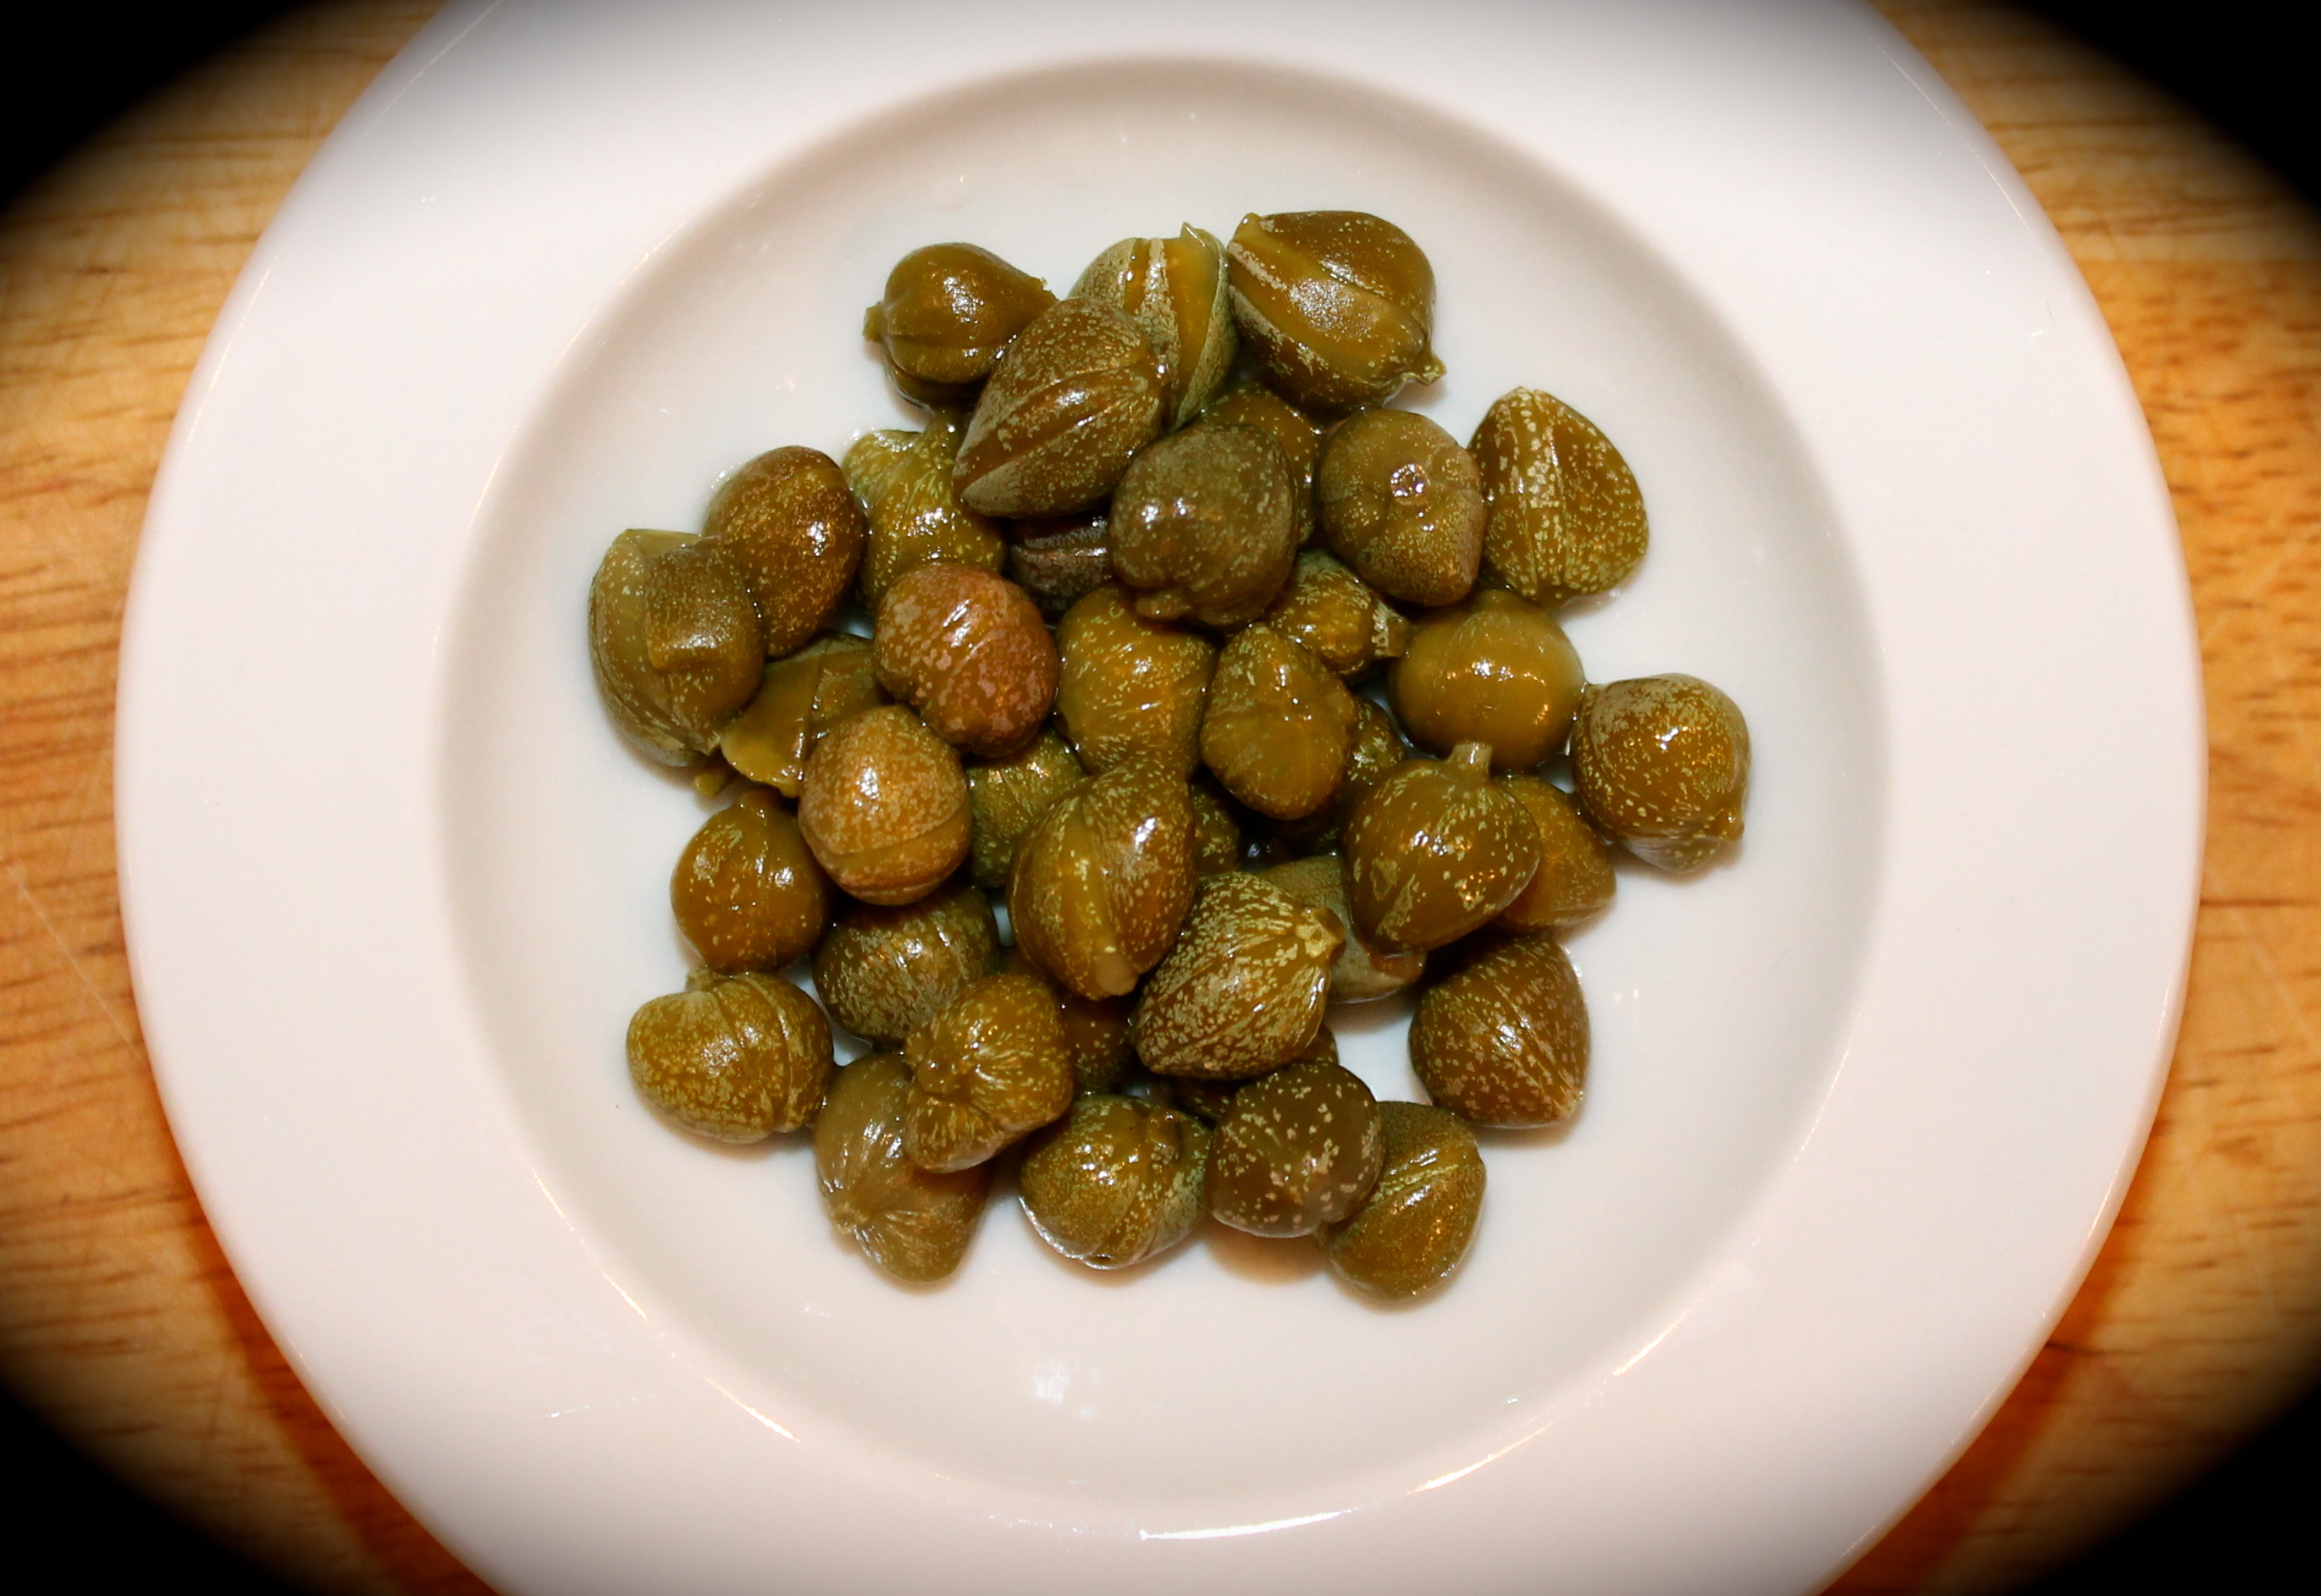 What the Heck are Capers & Non-Pariel Capers? ~ - Kitchen Encounters